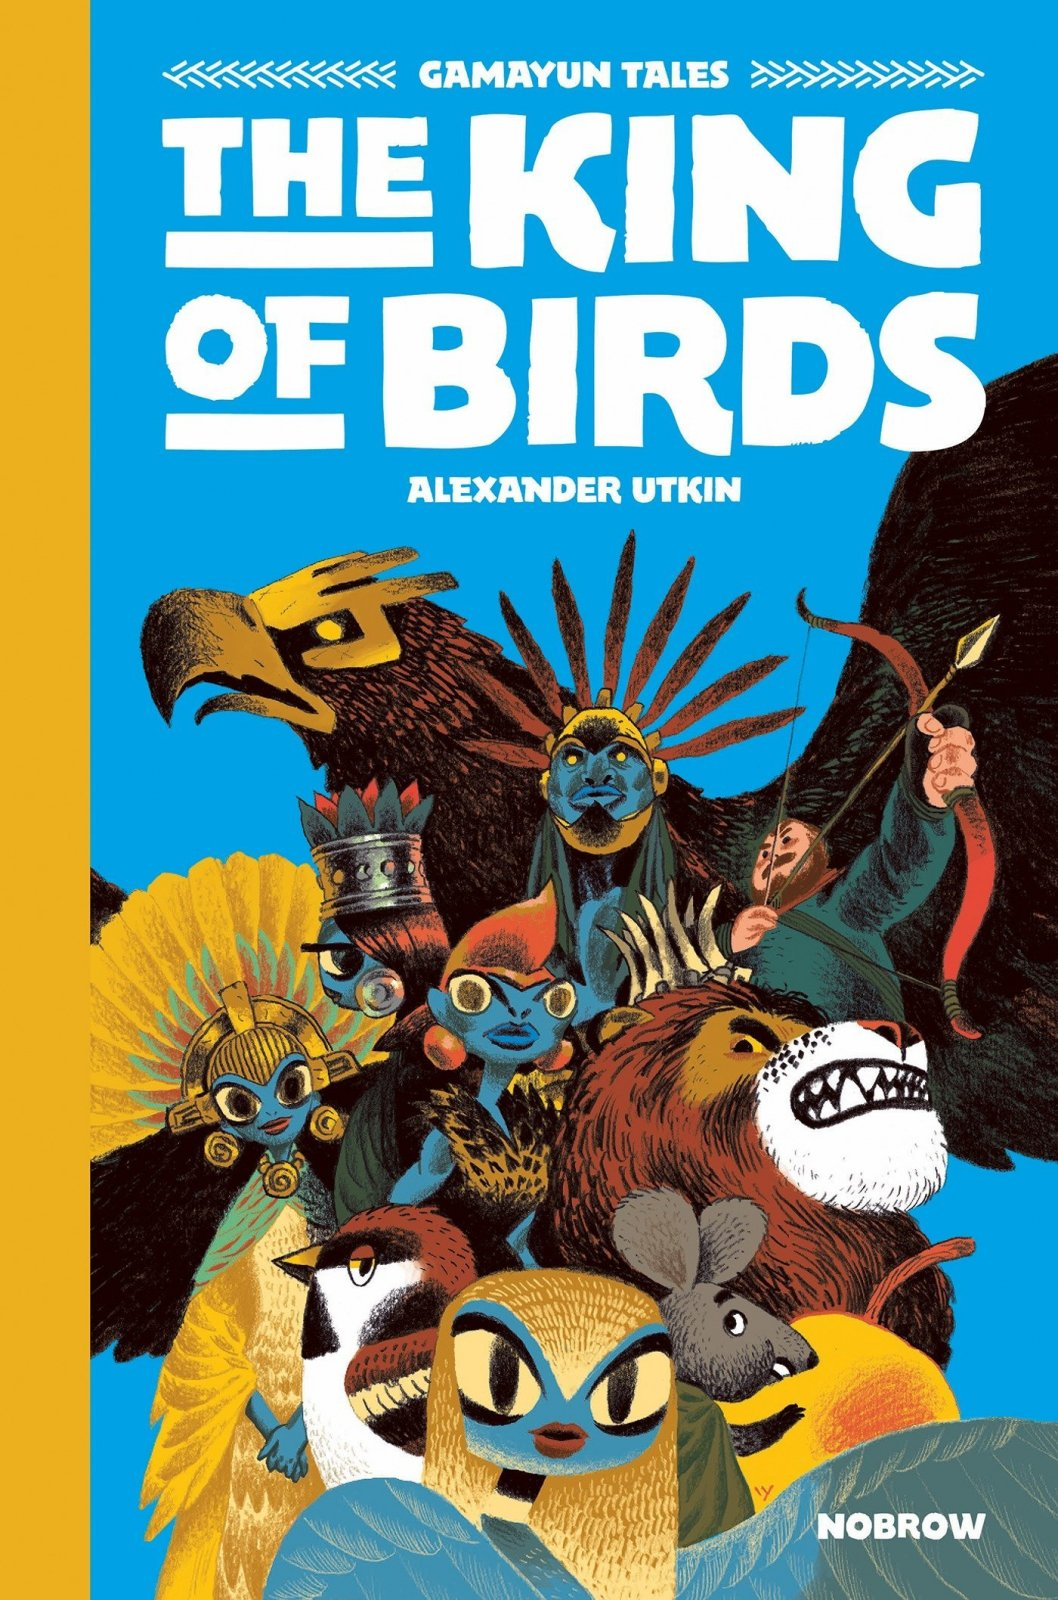 Gamayun Tales: The King of The Birds by Alexander Utkin